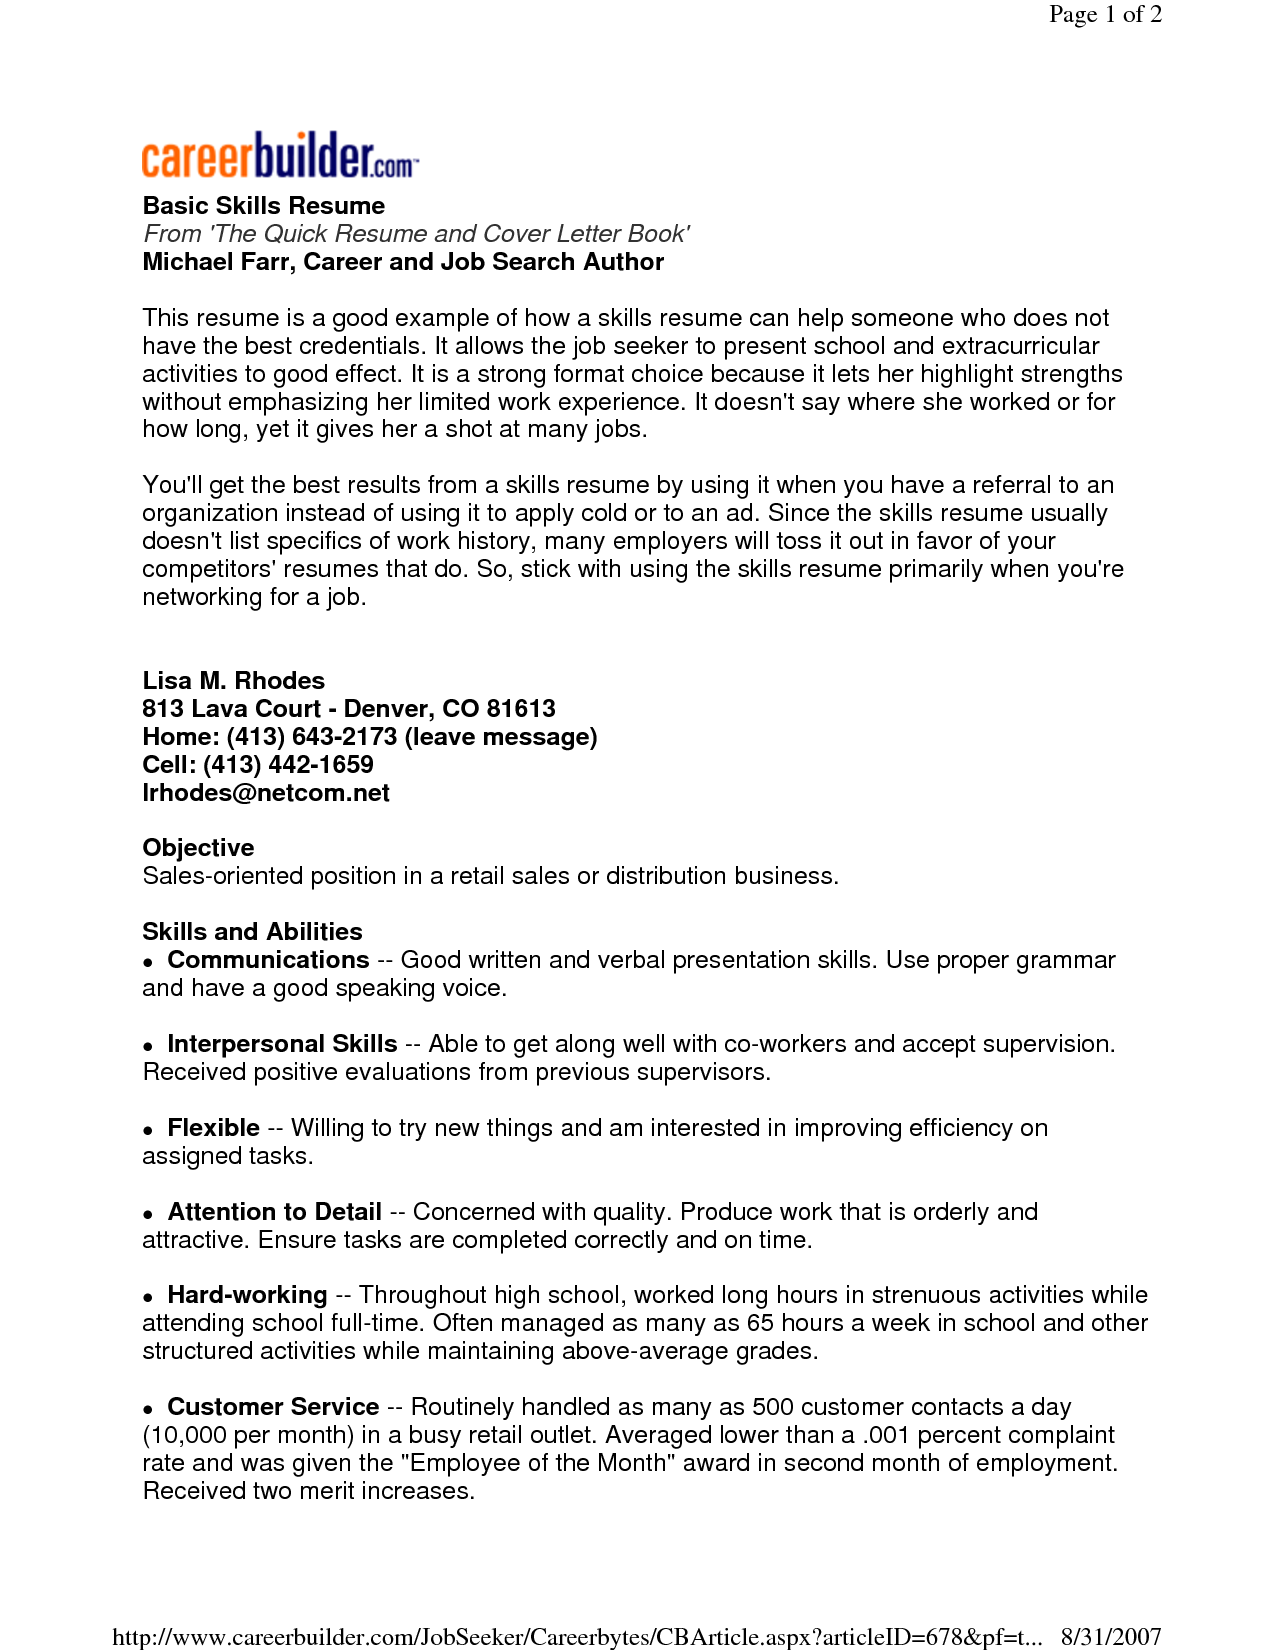 find here the sample resume that best fits your profile in